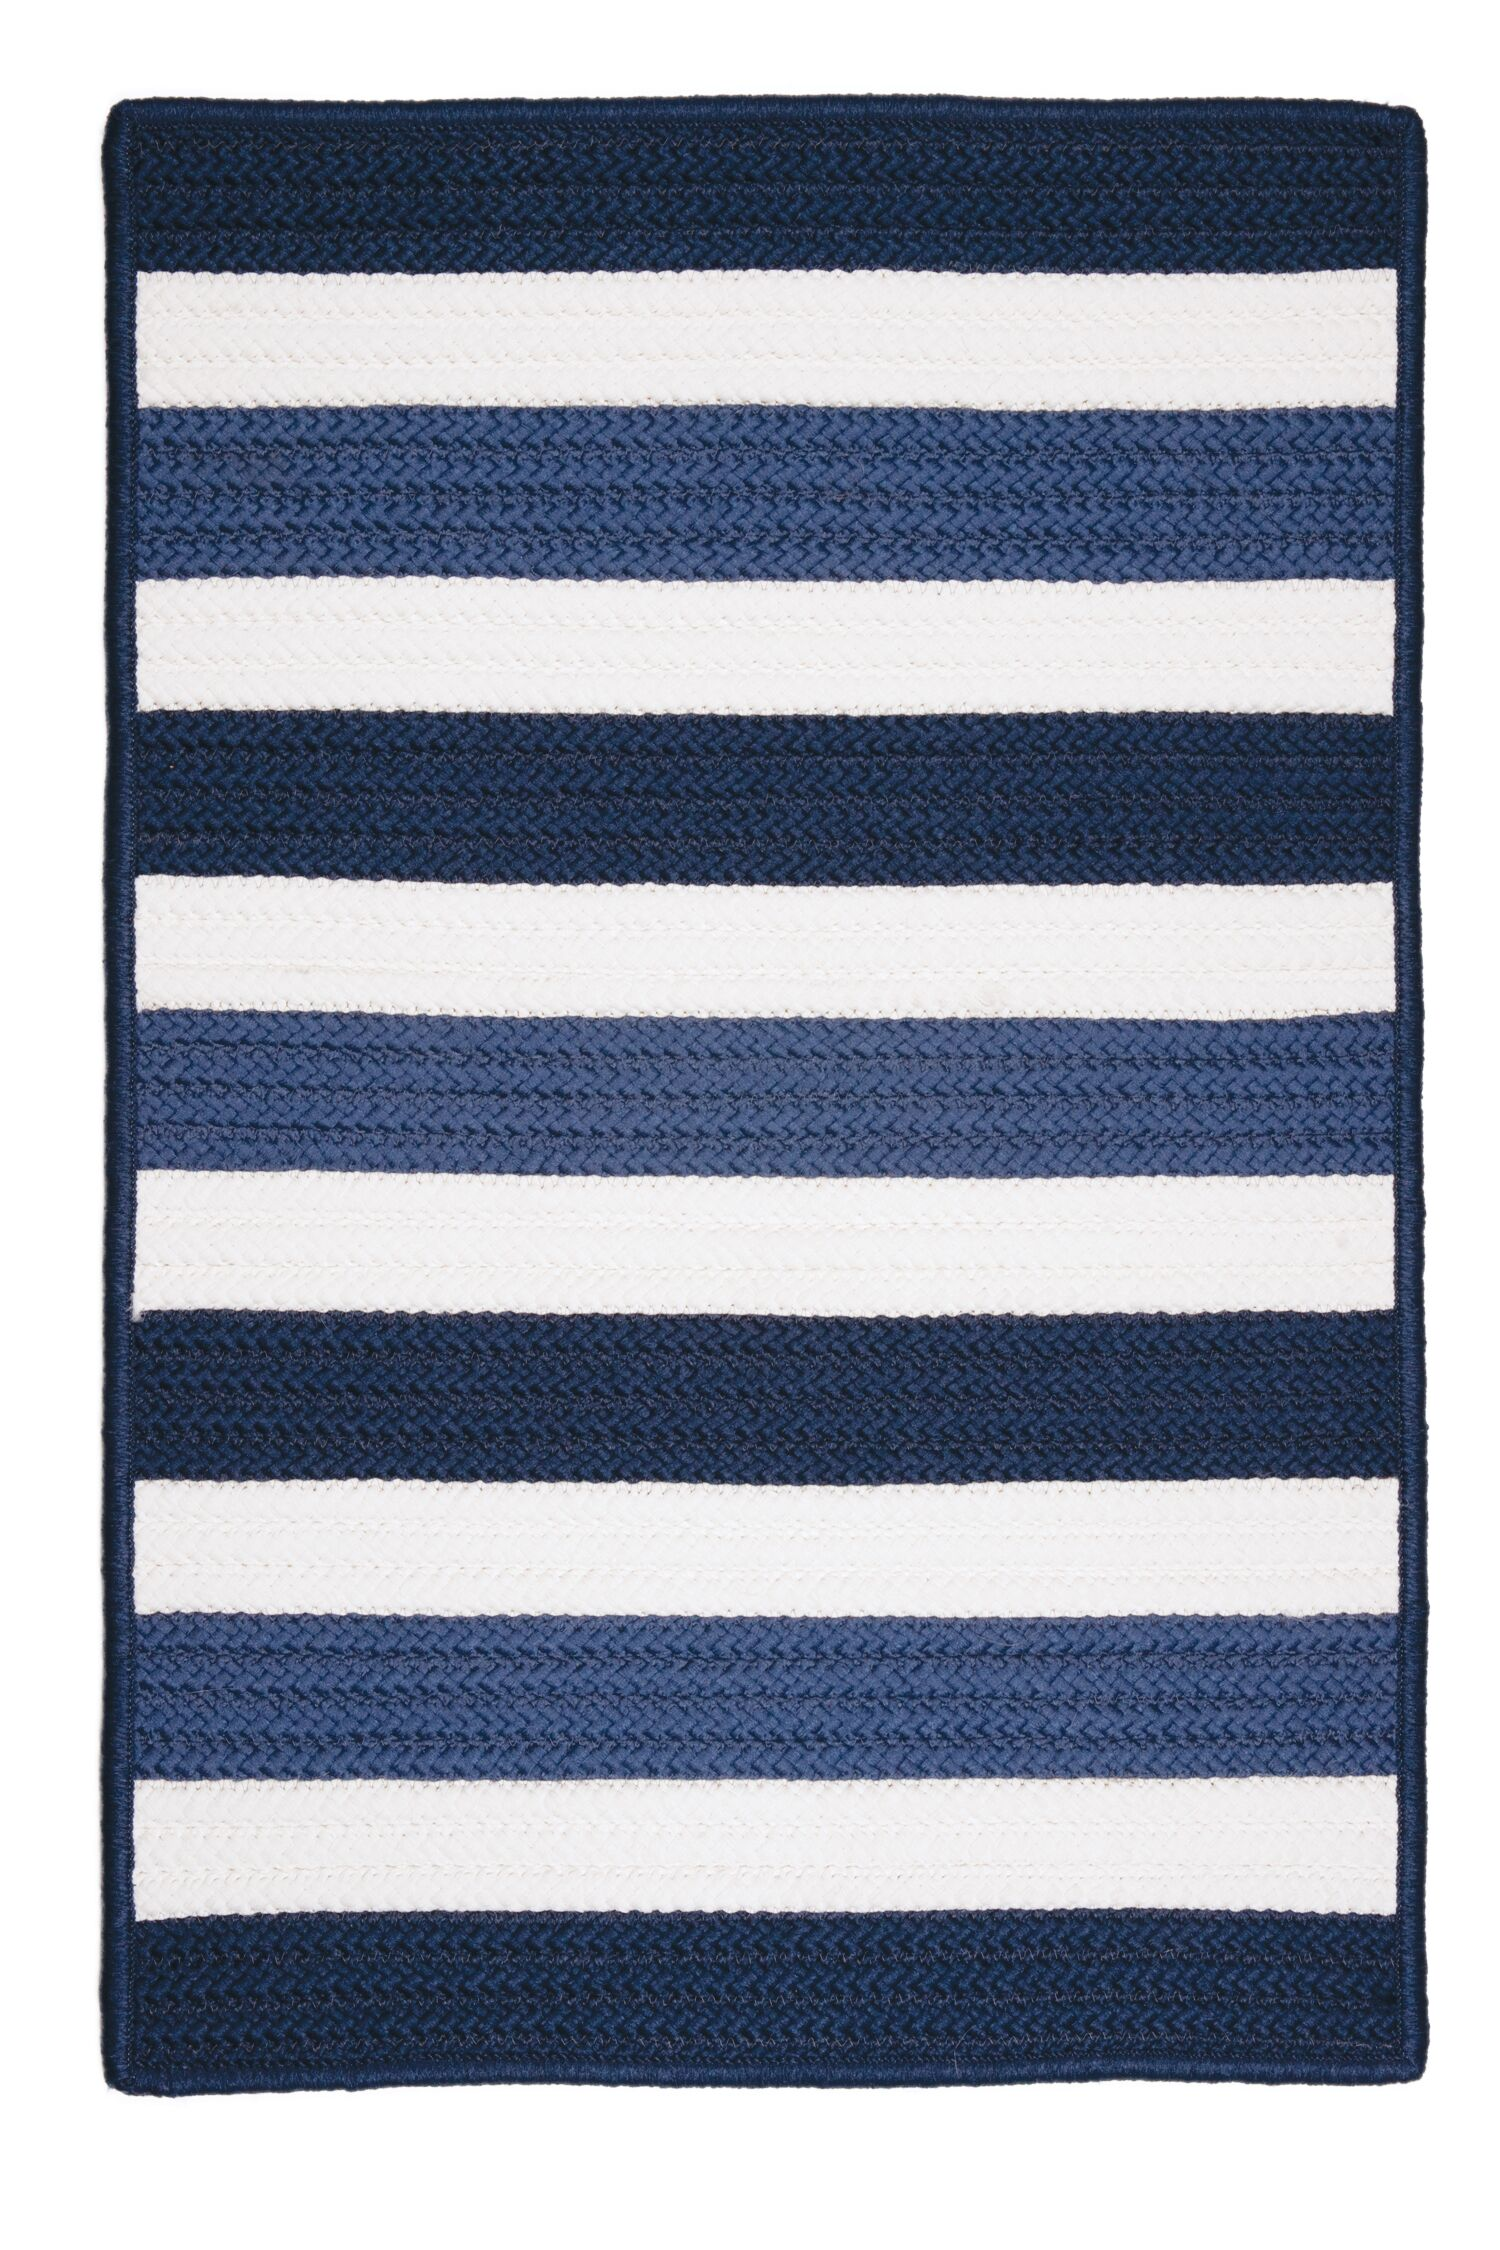 Eagle Lake Nautical Hand-Woven Blue Indoor/Outdoor Area Rug Rug Size: Square 10'